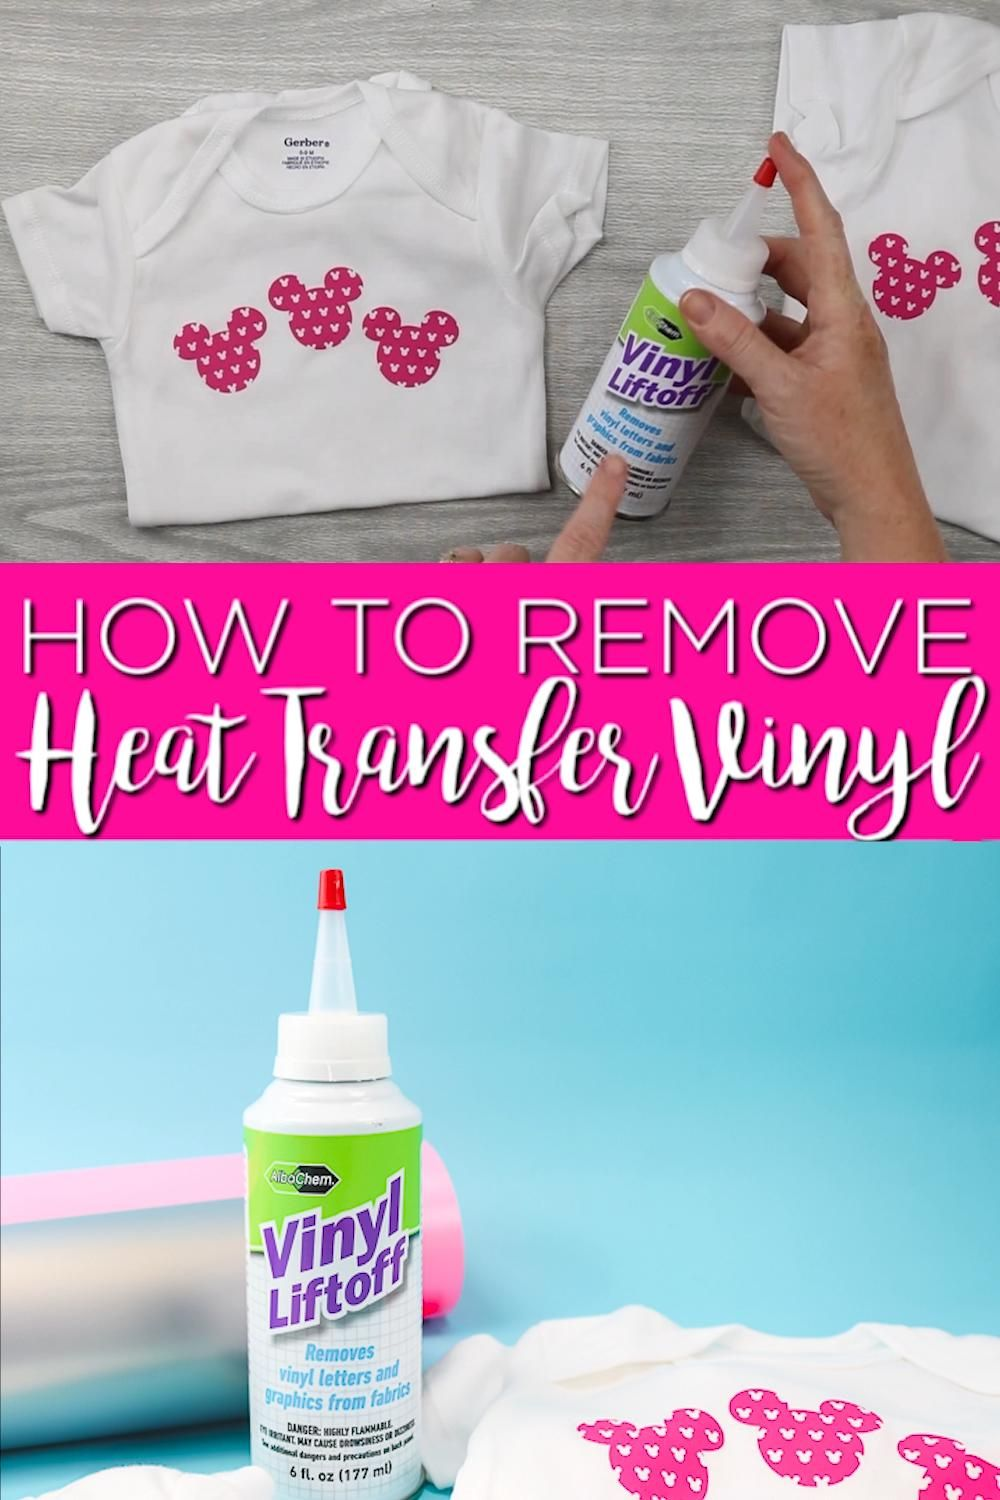 Learn how to remove heat transfer vinyl when you mess up a project! This is a lifesaver if you don't get it right the first time! #htv #heattransfervinyl #cricut #cricutcreated #ironon